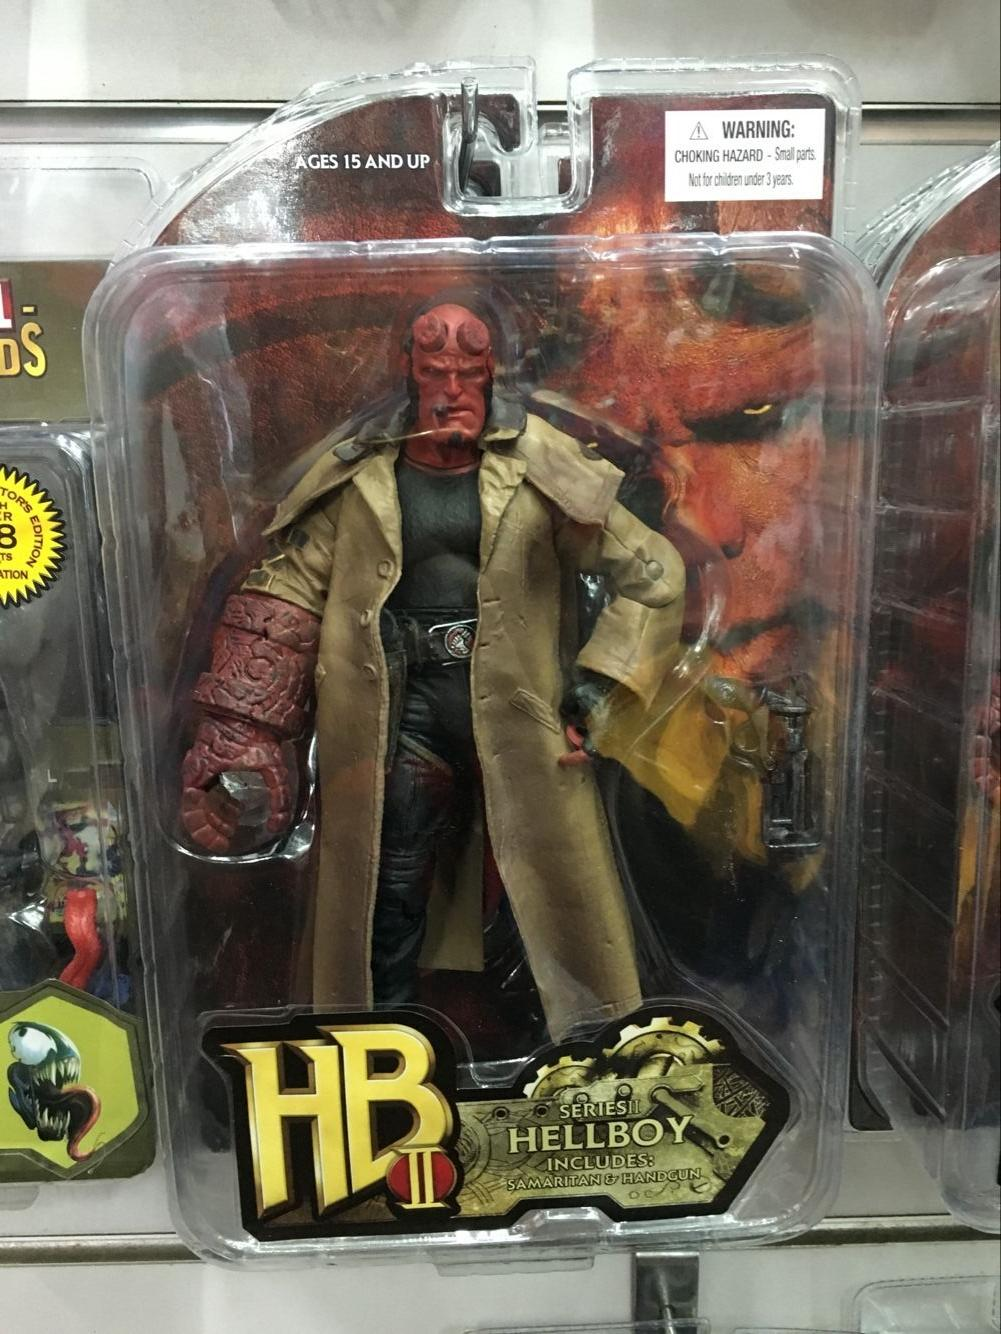 2019 Mezco Hellboy 2 Styles Pvc Action Figure Collectible Model Toy